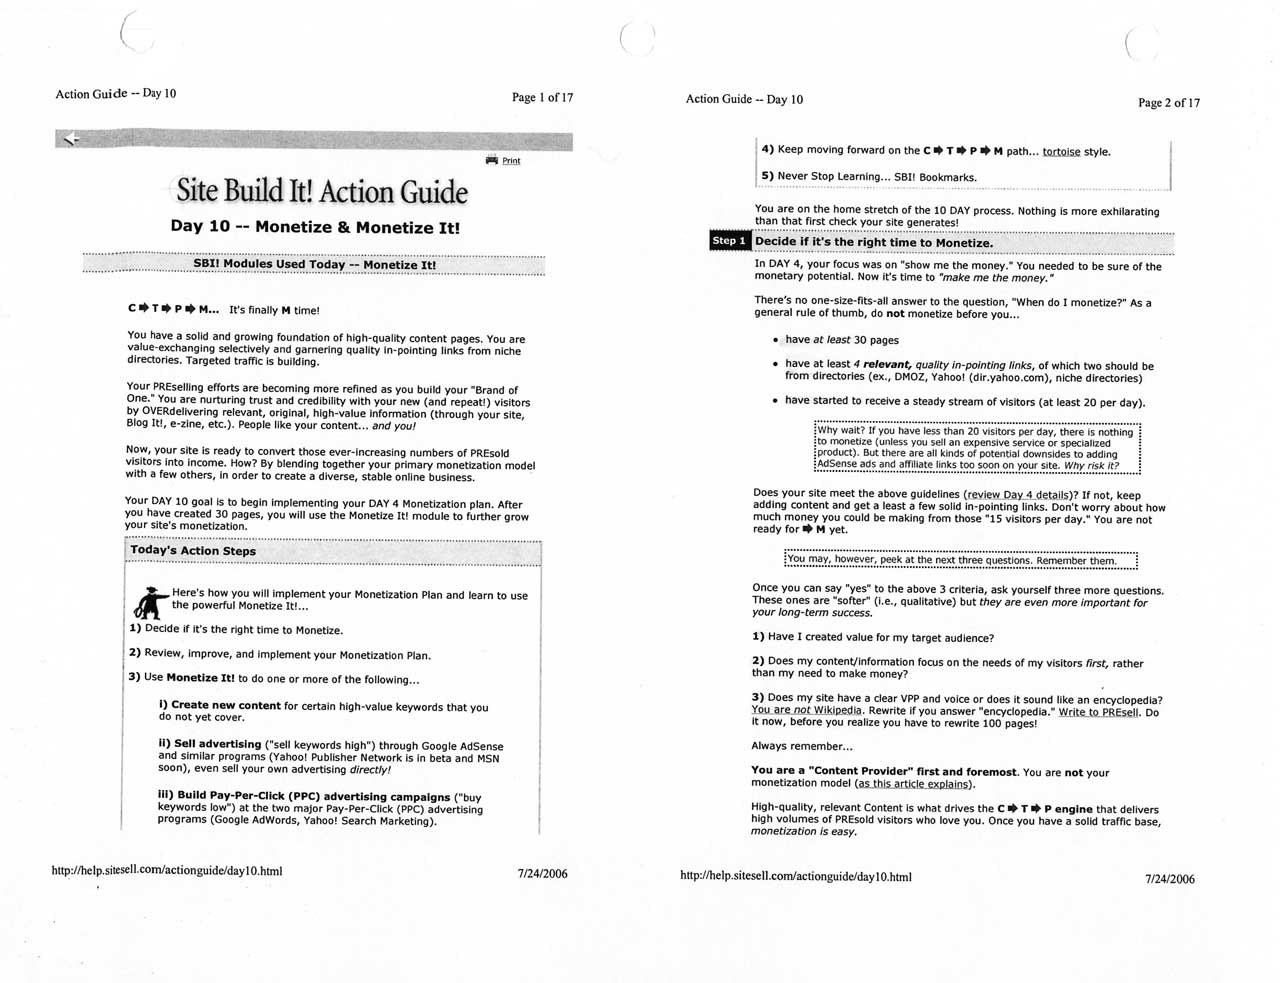 Printout of page from the 10th day of the 10-day Action Guide. By this time, I was already building momentum on constructing the World of Waterfalls website from the ground up